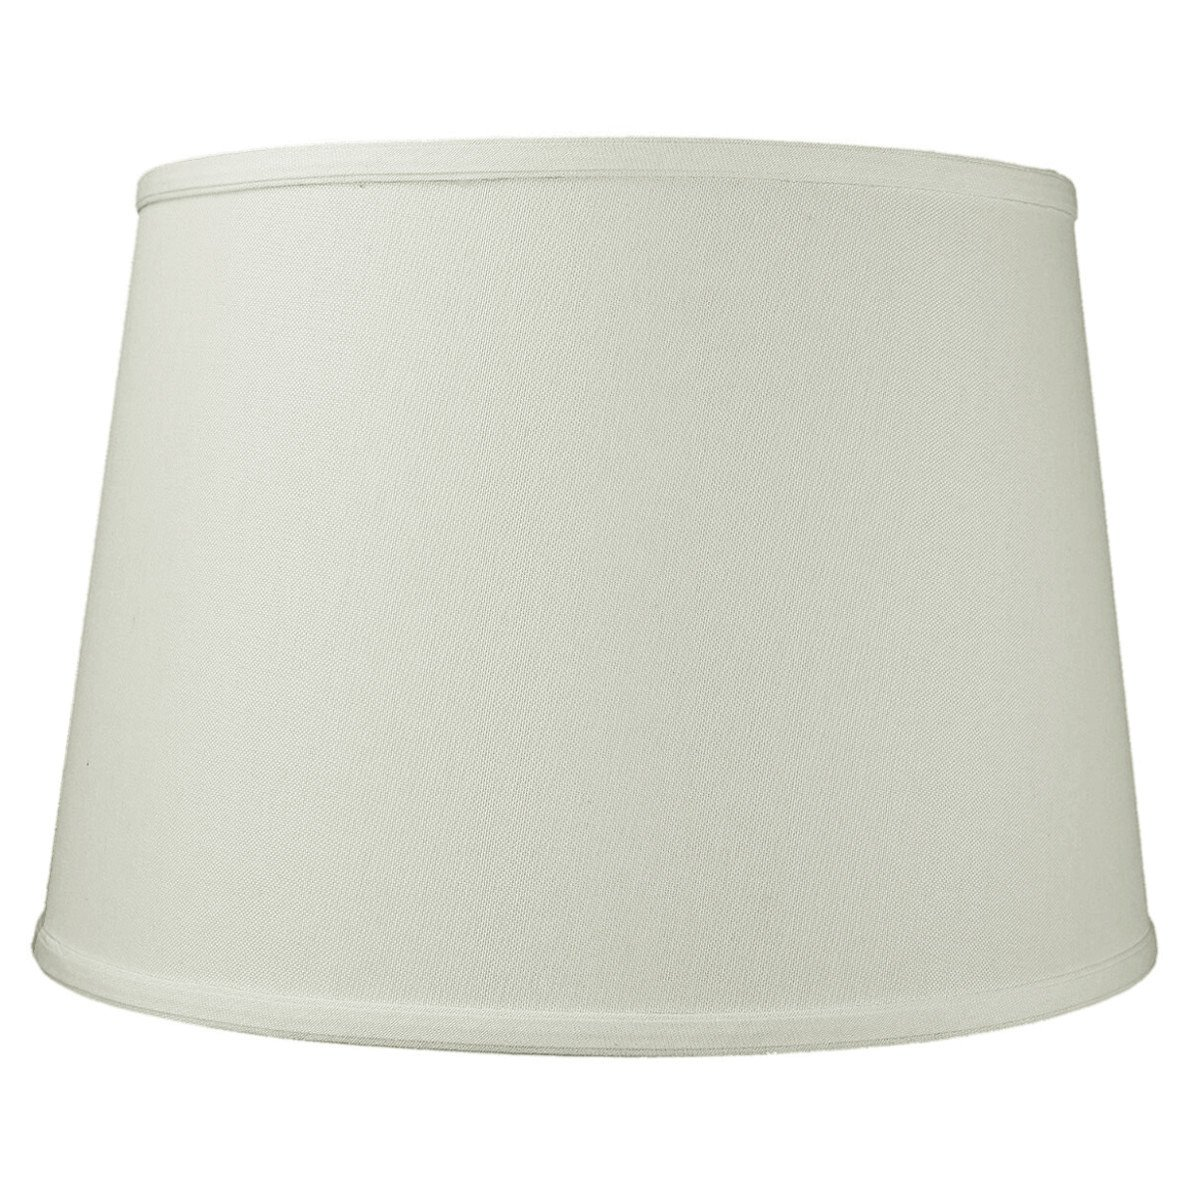 HomeConcept 131611FLLO Light Oatmeal Linen Floor Lampshade with Brass Spider Fitter by Home Concept, 13'' x 16'' x 11'', White